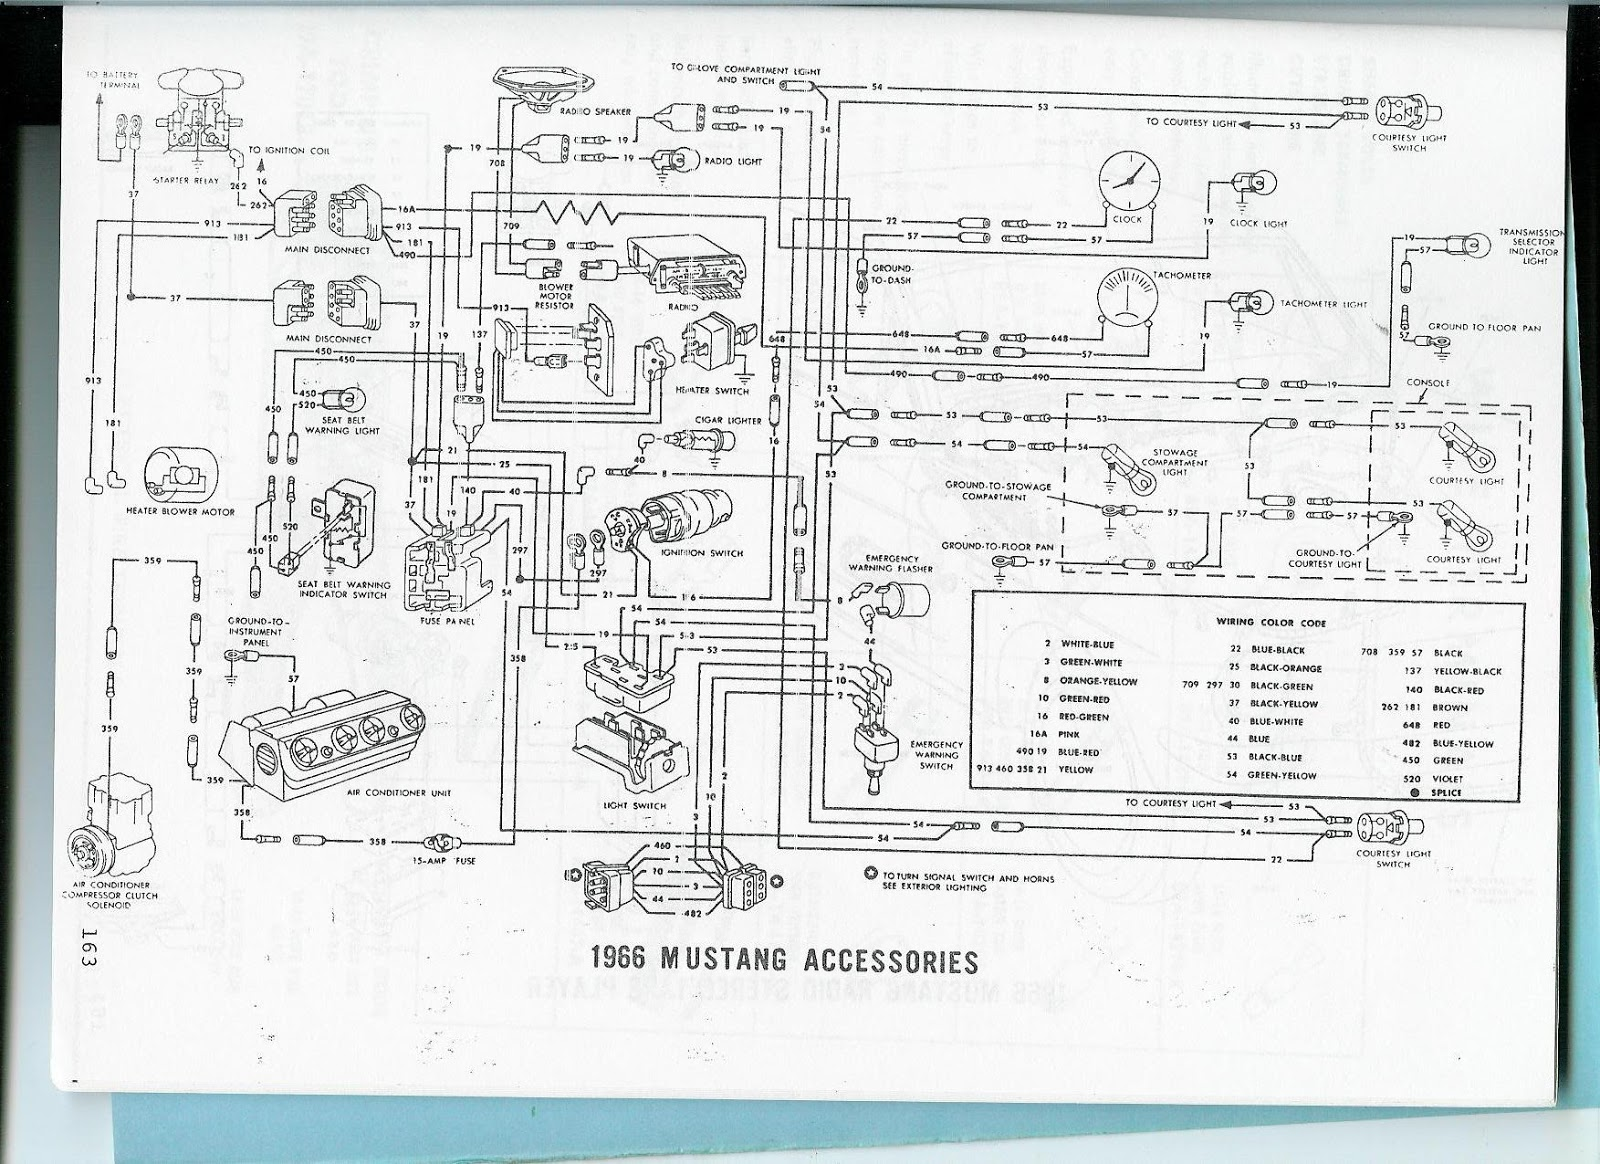 66 ford mustang wiring diagram 90 honda accord fuel pump the care and feeding of ponies 1966 diagrams